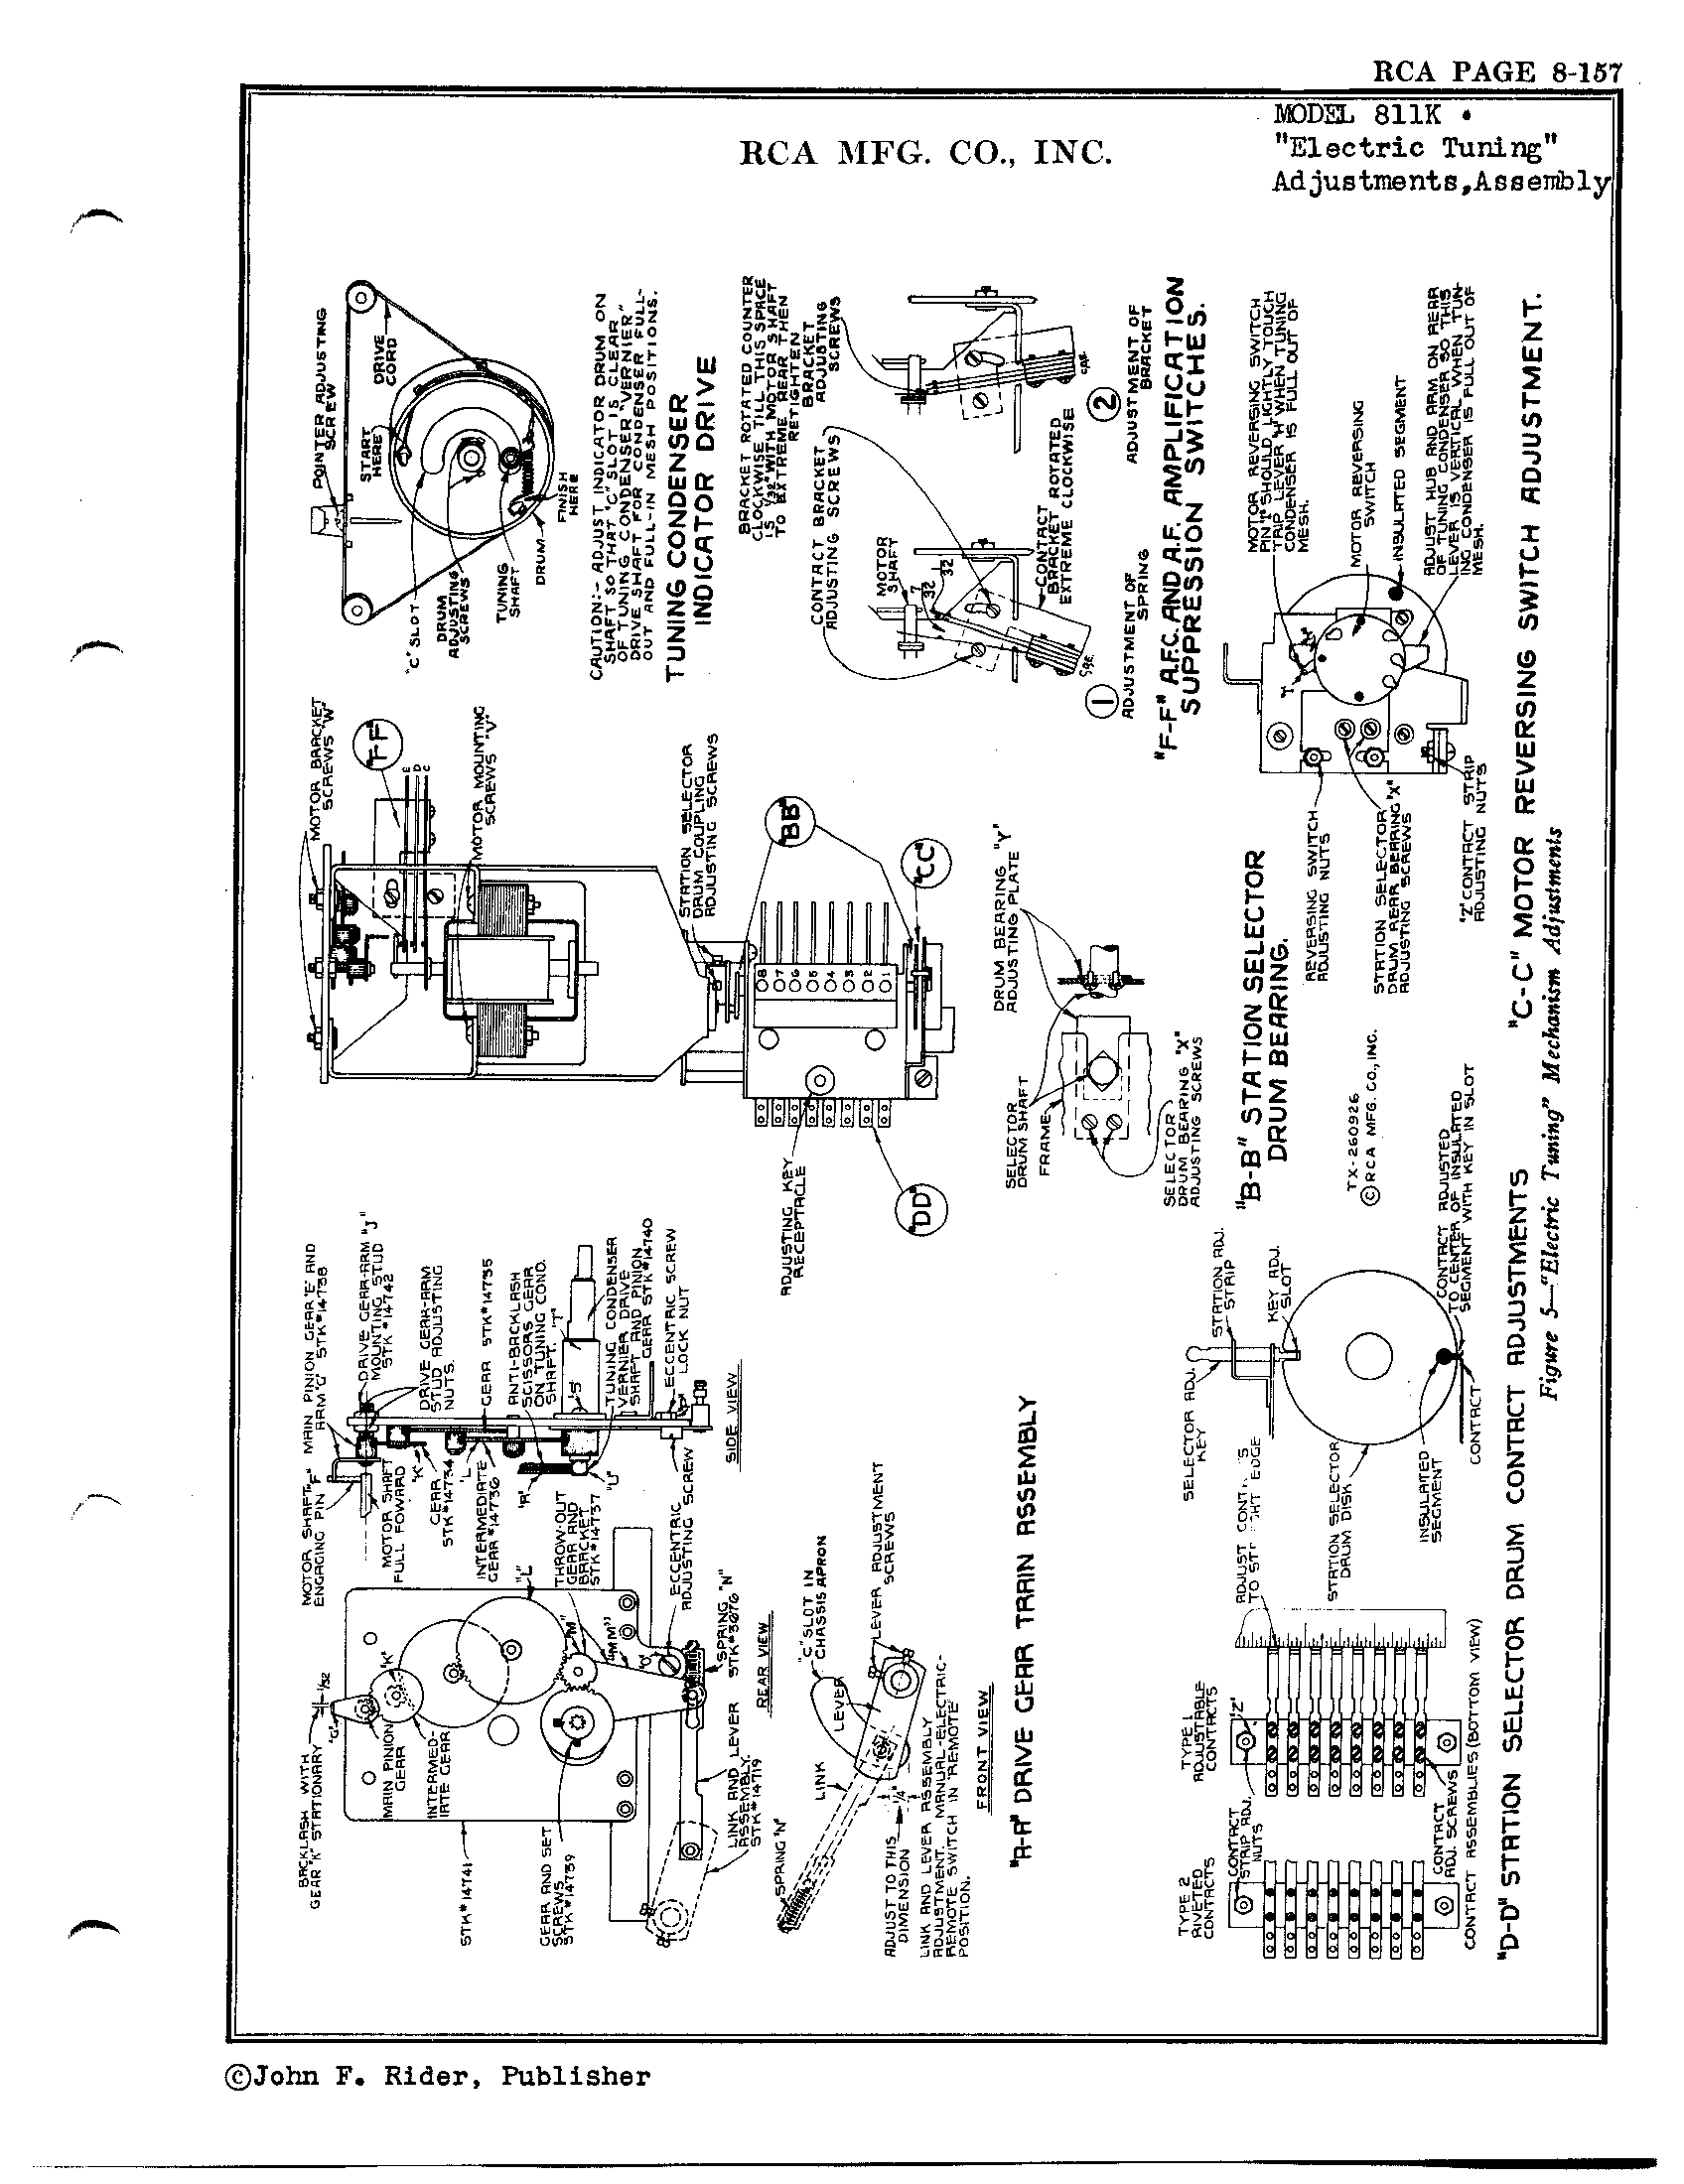 Rca Victor Co Inc 811k Antique Electronic Supply Train Schematics Page 5 7828 Kb Rider Manual Volume 8